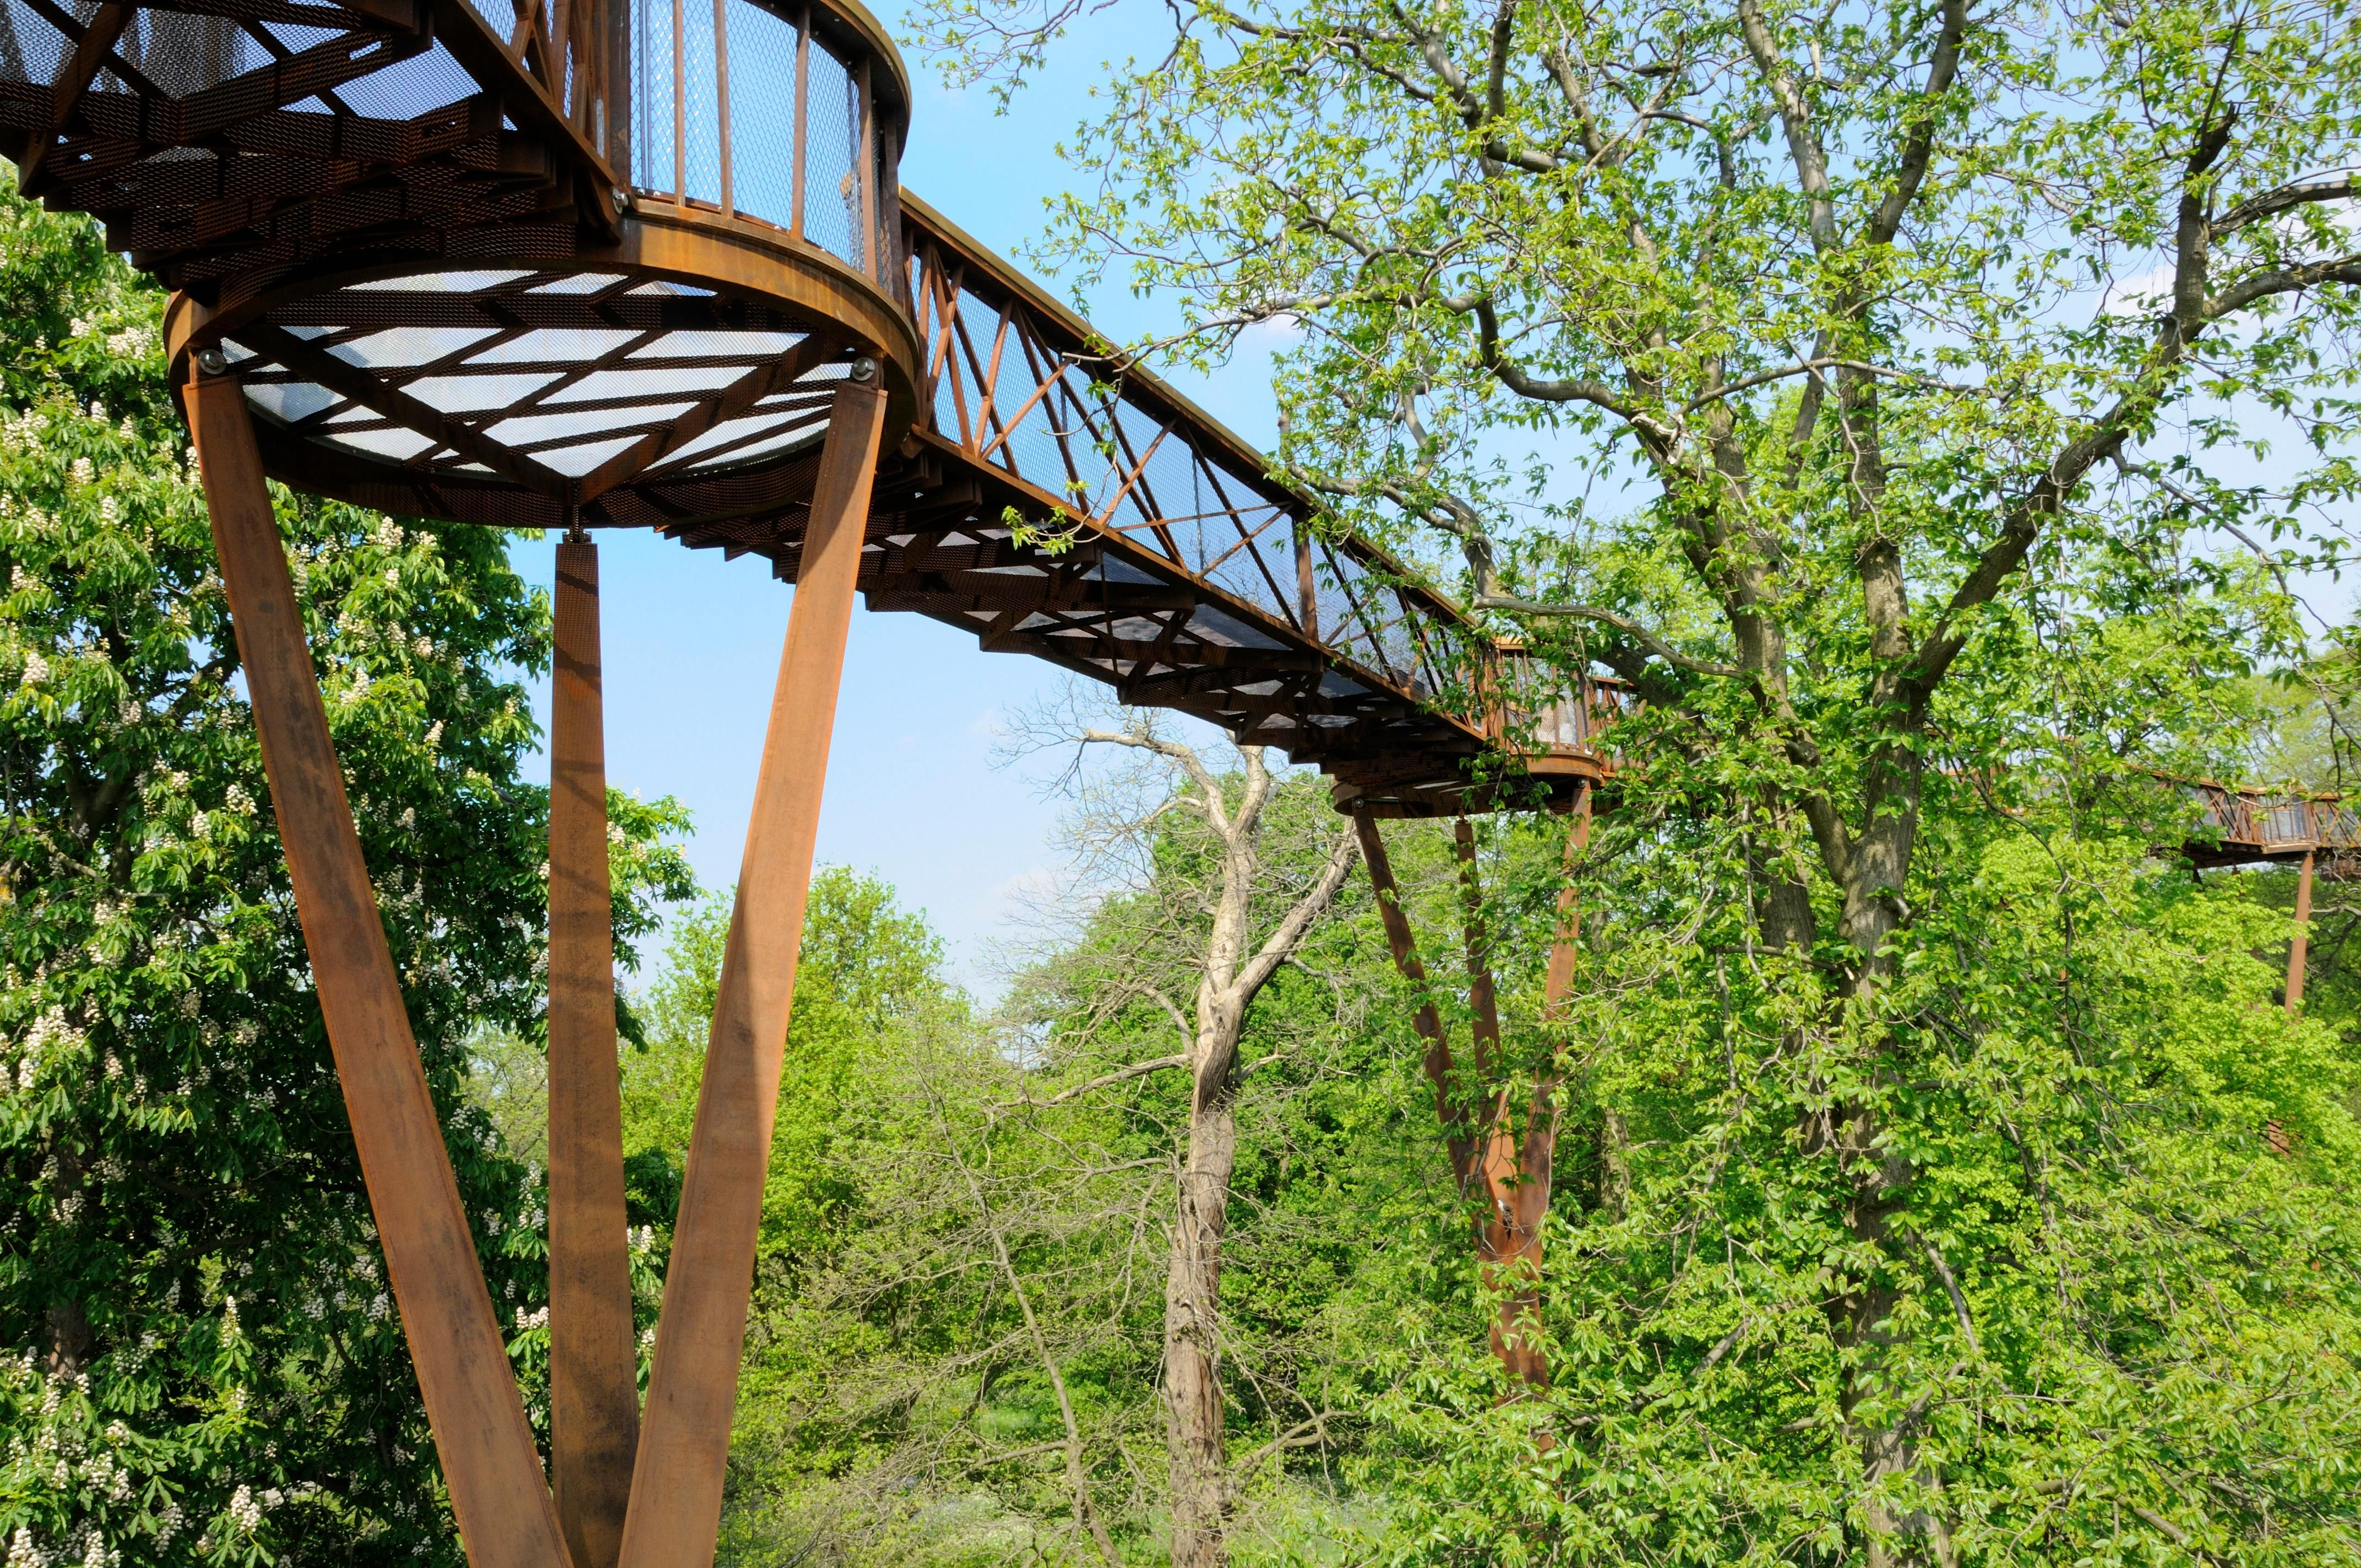 The Treetop Walkway at Kew Gardens, London. As well as walking high up alongside treas you can see the ground below through the walkway. The experience is surreal!